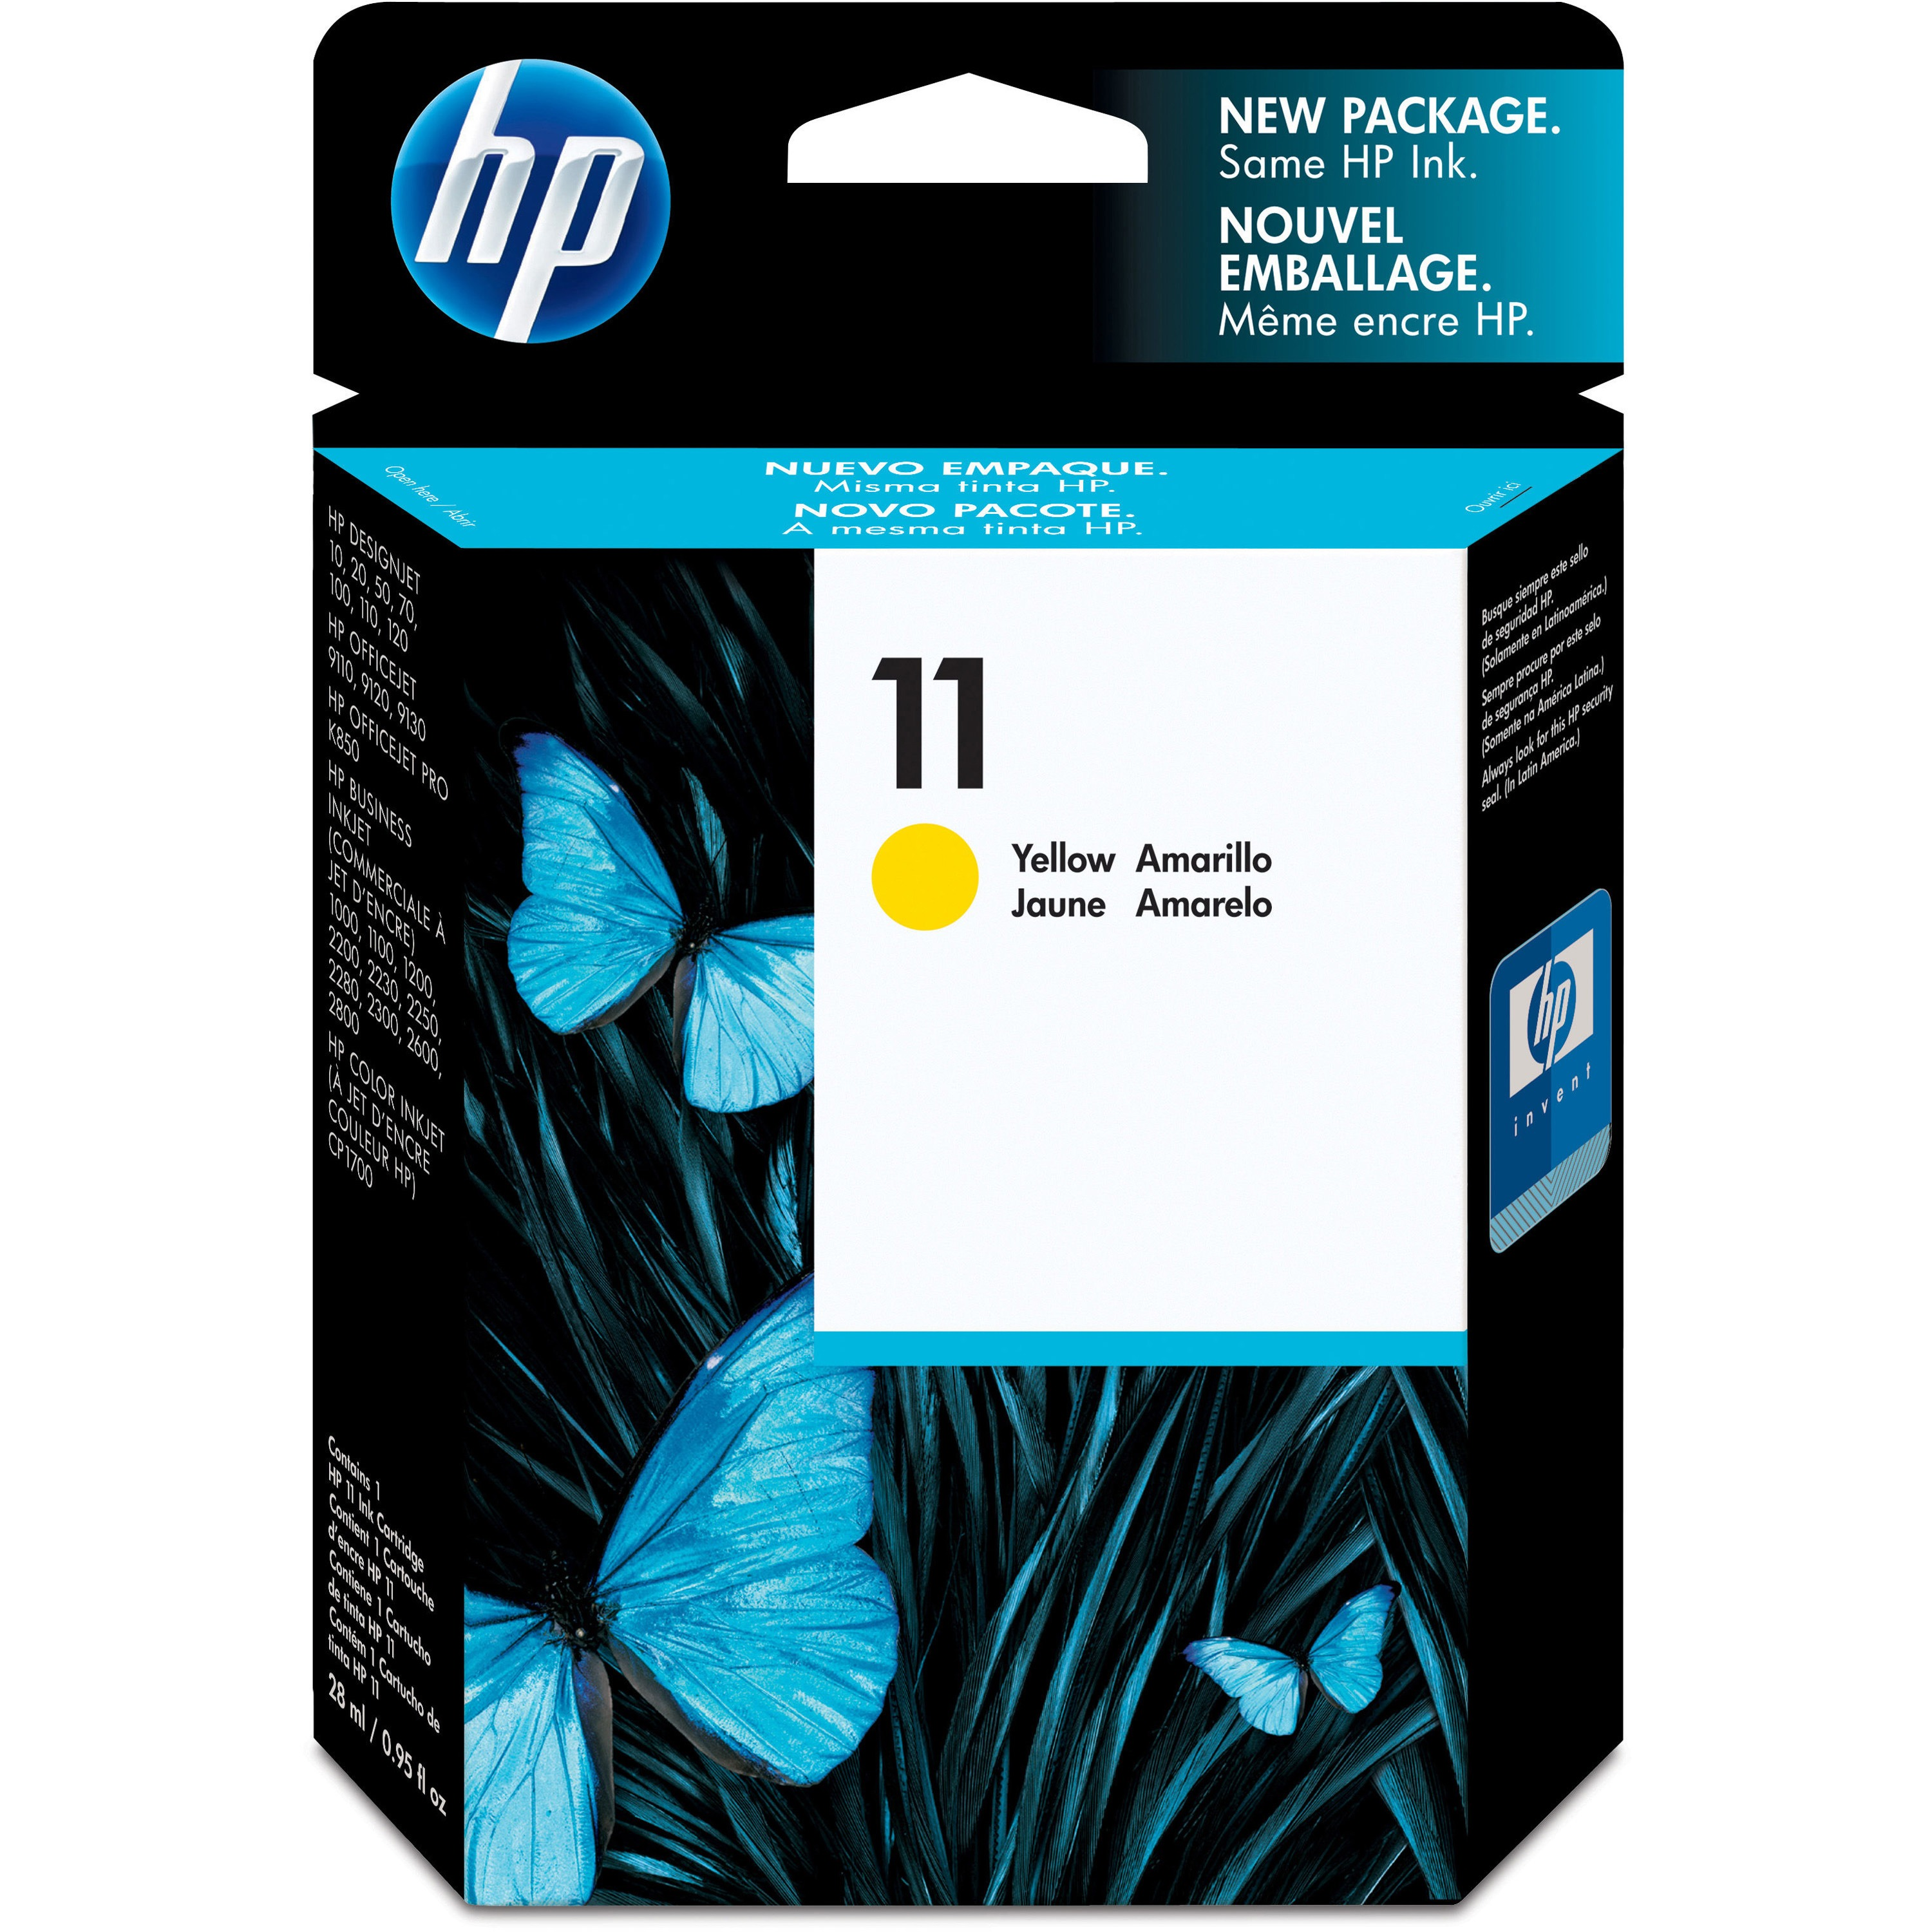 HP, HEWC4838A, C4836A/37A/38A Ink Cartridges, 1 Each